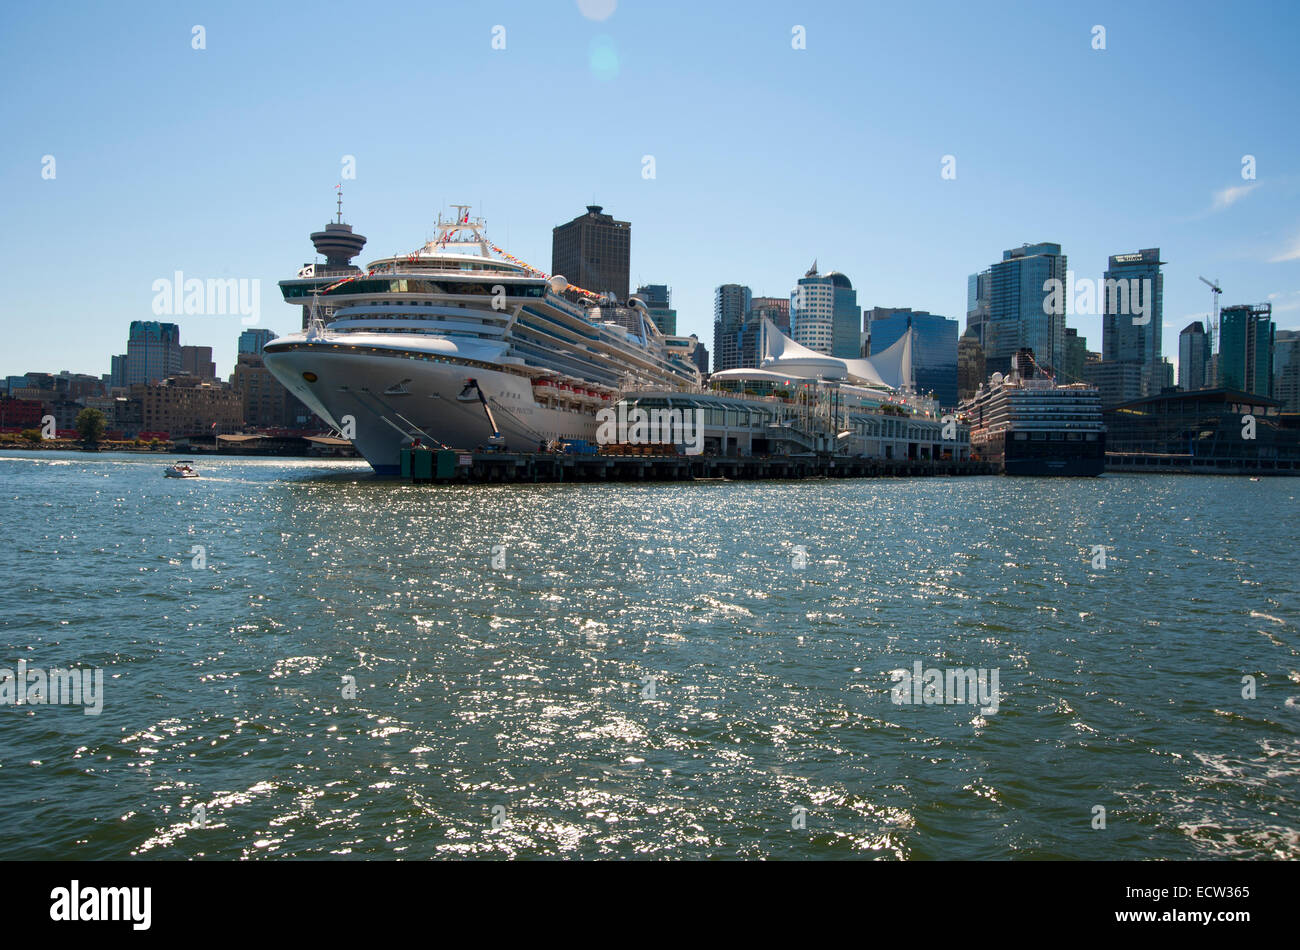 Canada Place and cruise ships with skyscrapers in background, Vancouver, British Columbia, Canada - Stock Image